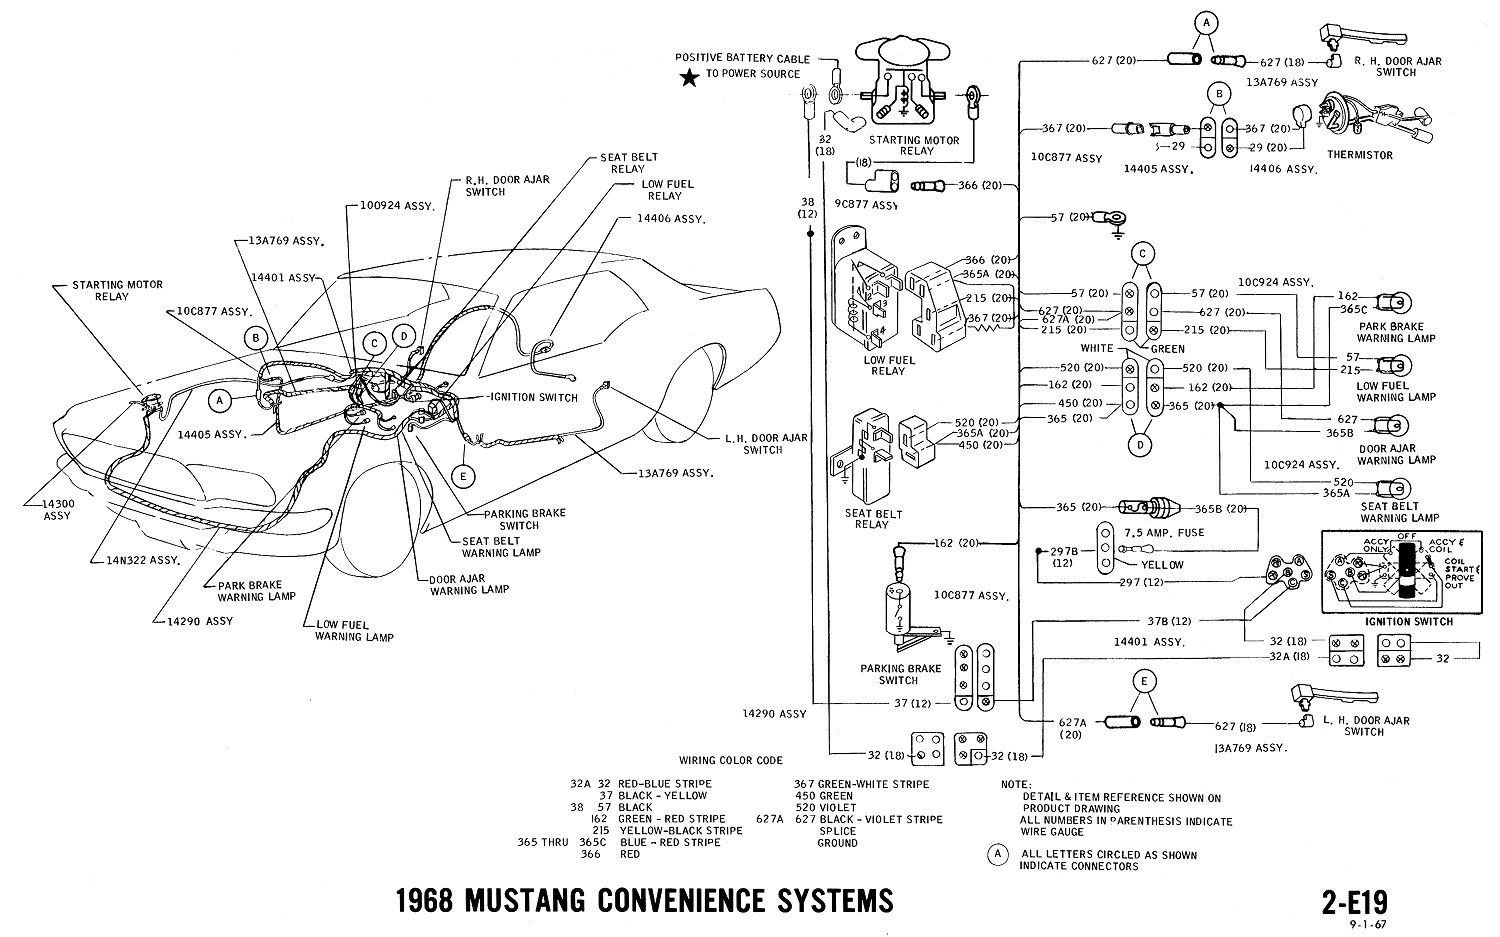 1968 mustang wiring diagram convenience systems 1968 mustang wiring diagrams and vacuum schematics average joe engine wiring diagram 1967 mustang v8 at mifinder.co